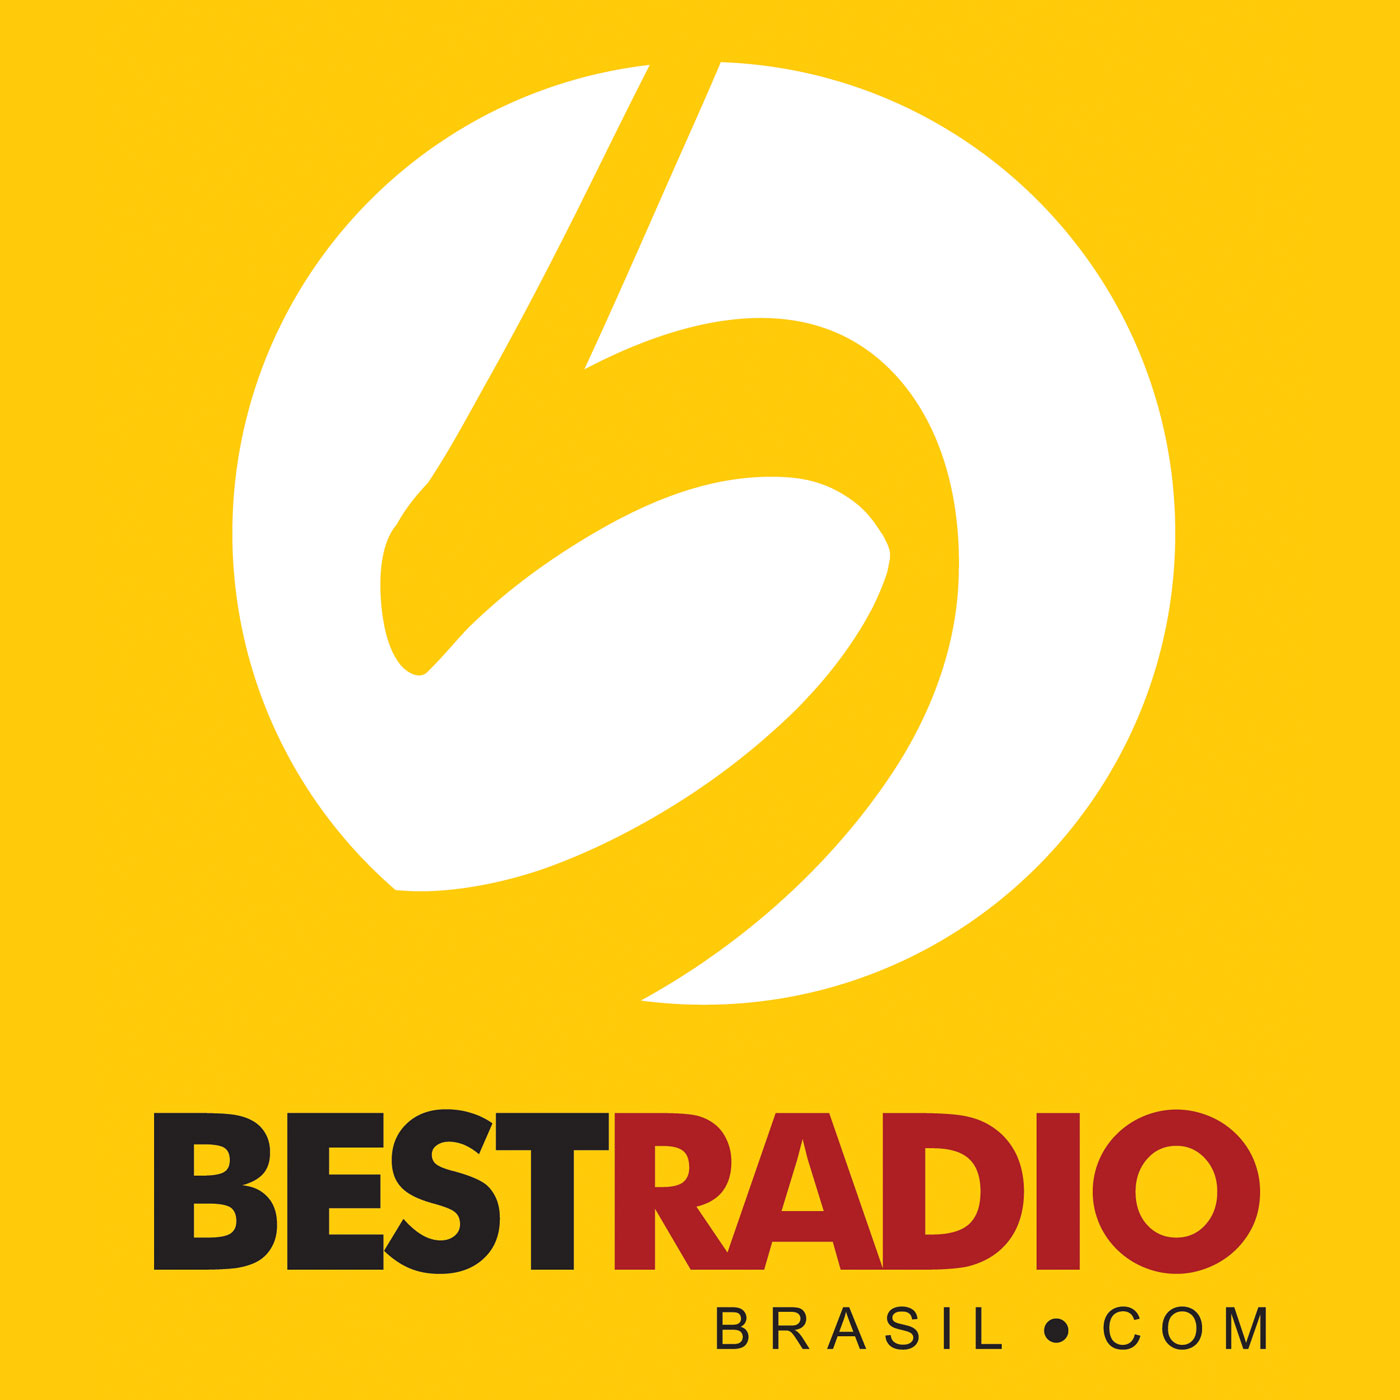 BestRadio Brasil » On Demand